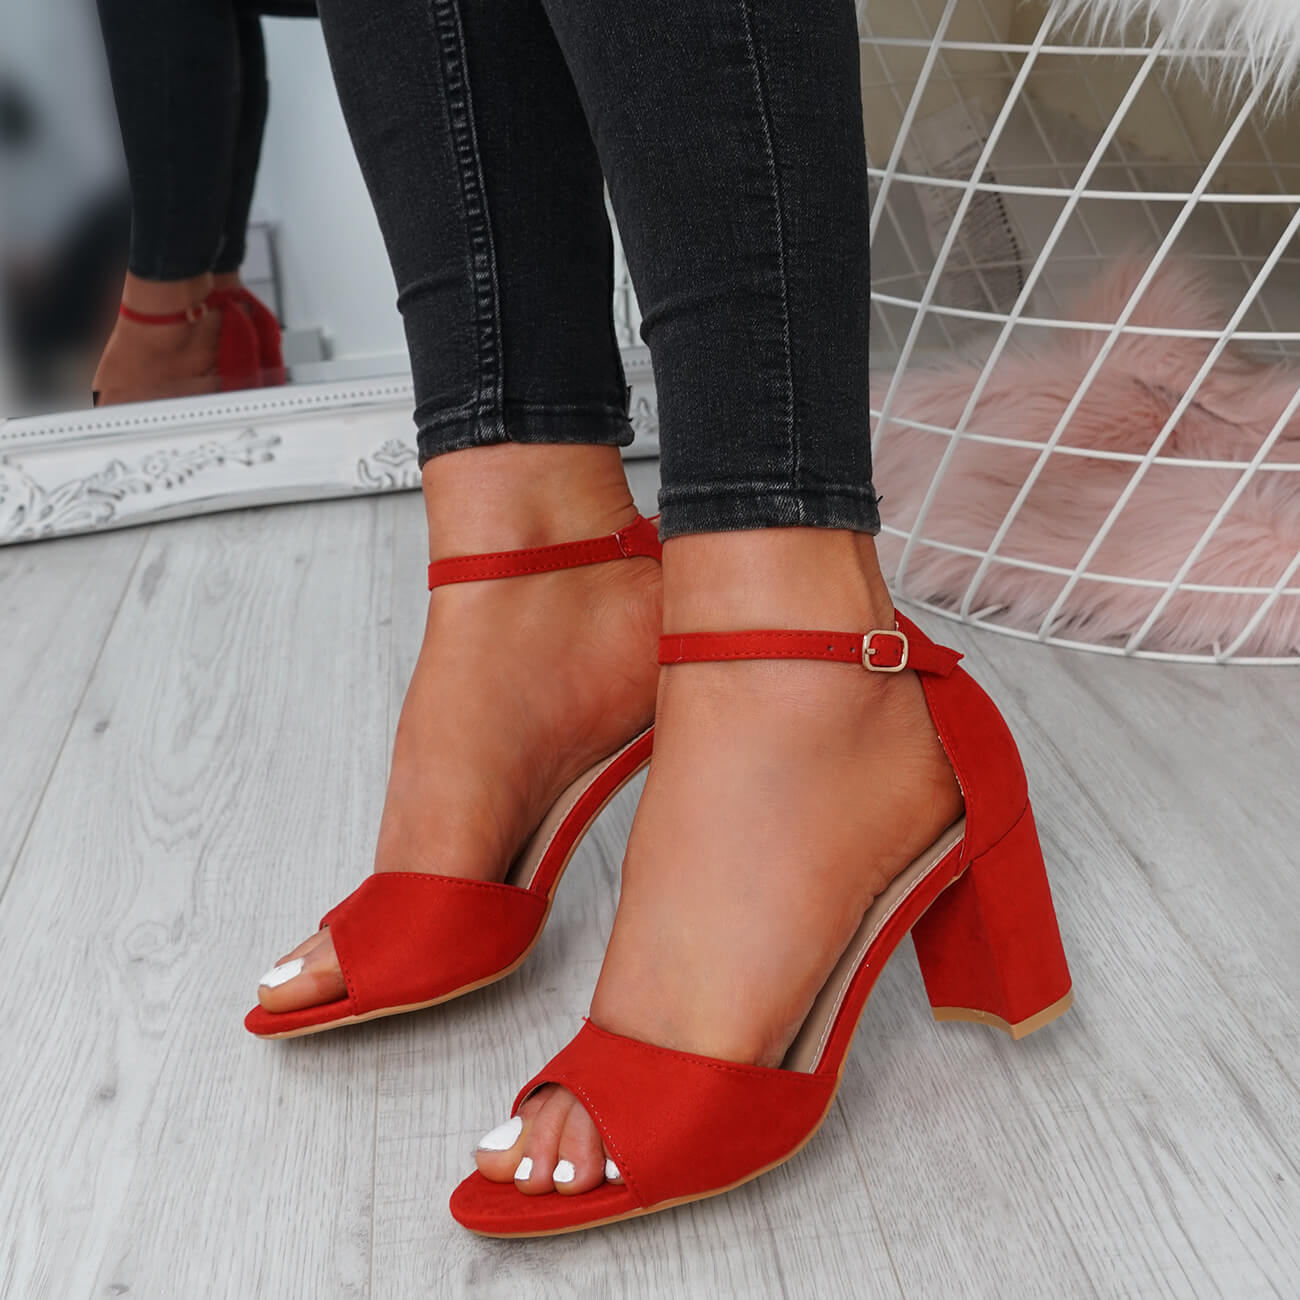 WOMENS-LADIES-ANKLE-STRAP-HIGH-BLOCK-HEEL-SANDALS-PEEP-TOE-PARTY-SHOES-SIZE thumbnail 25